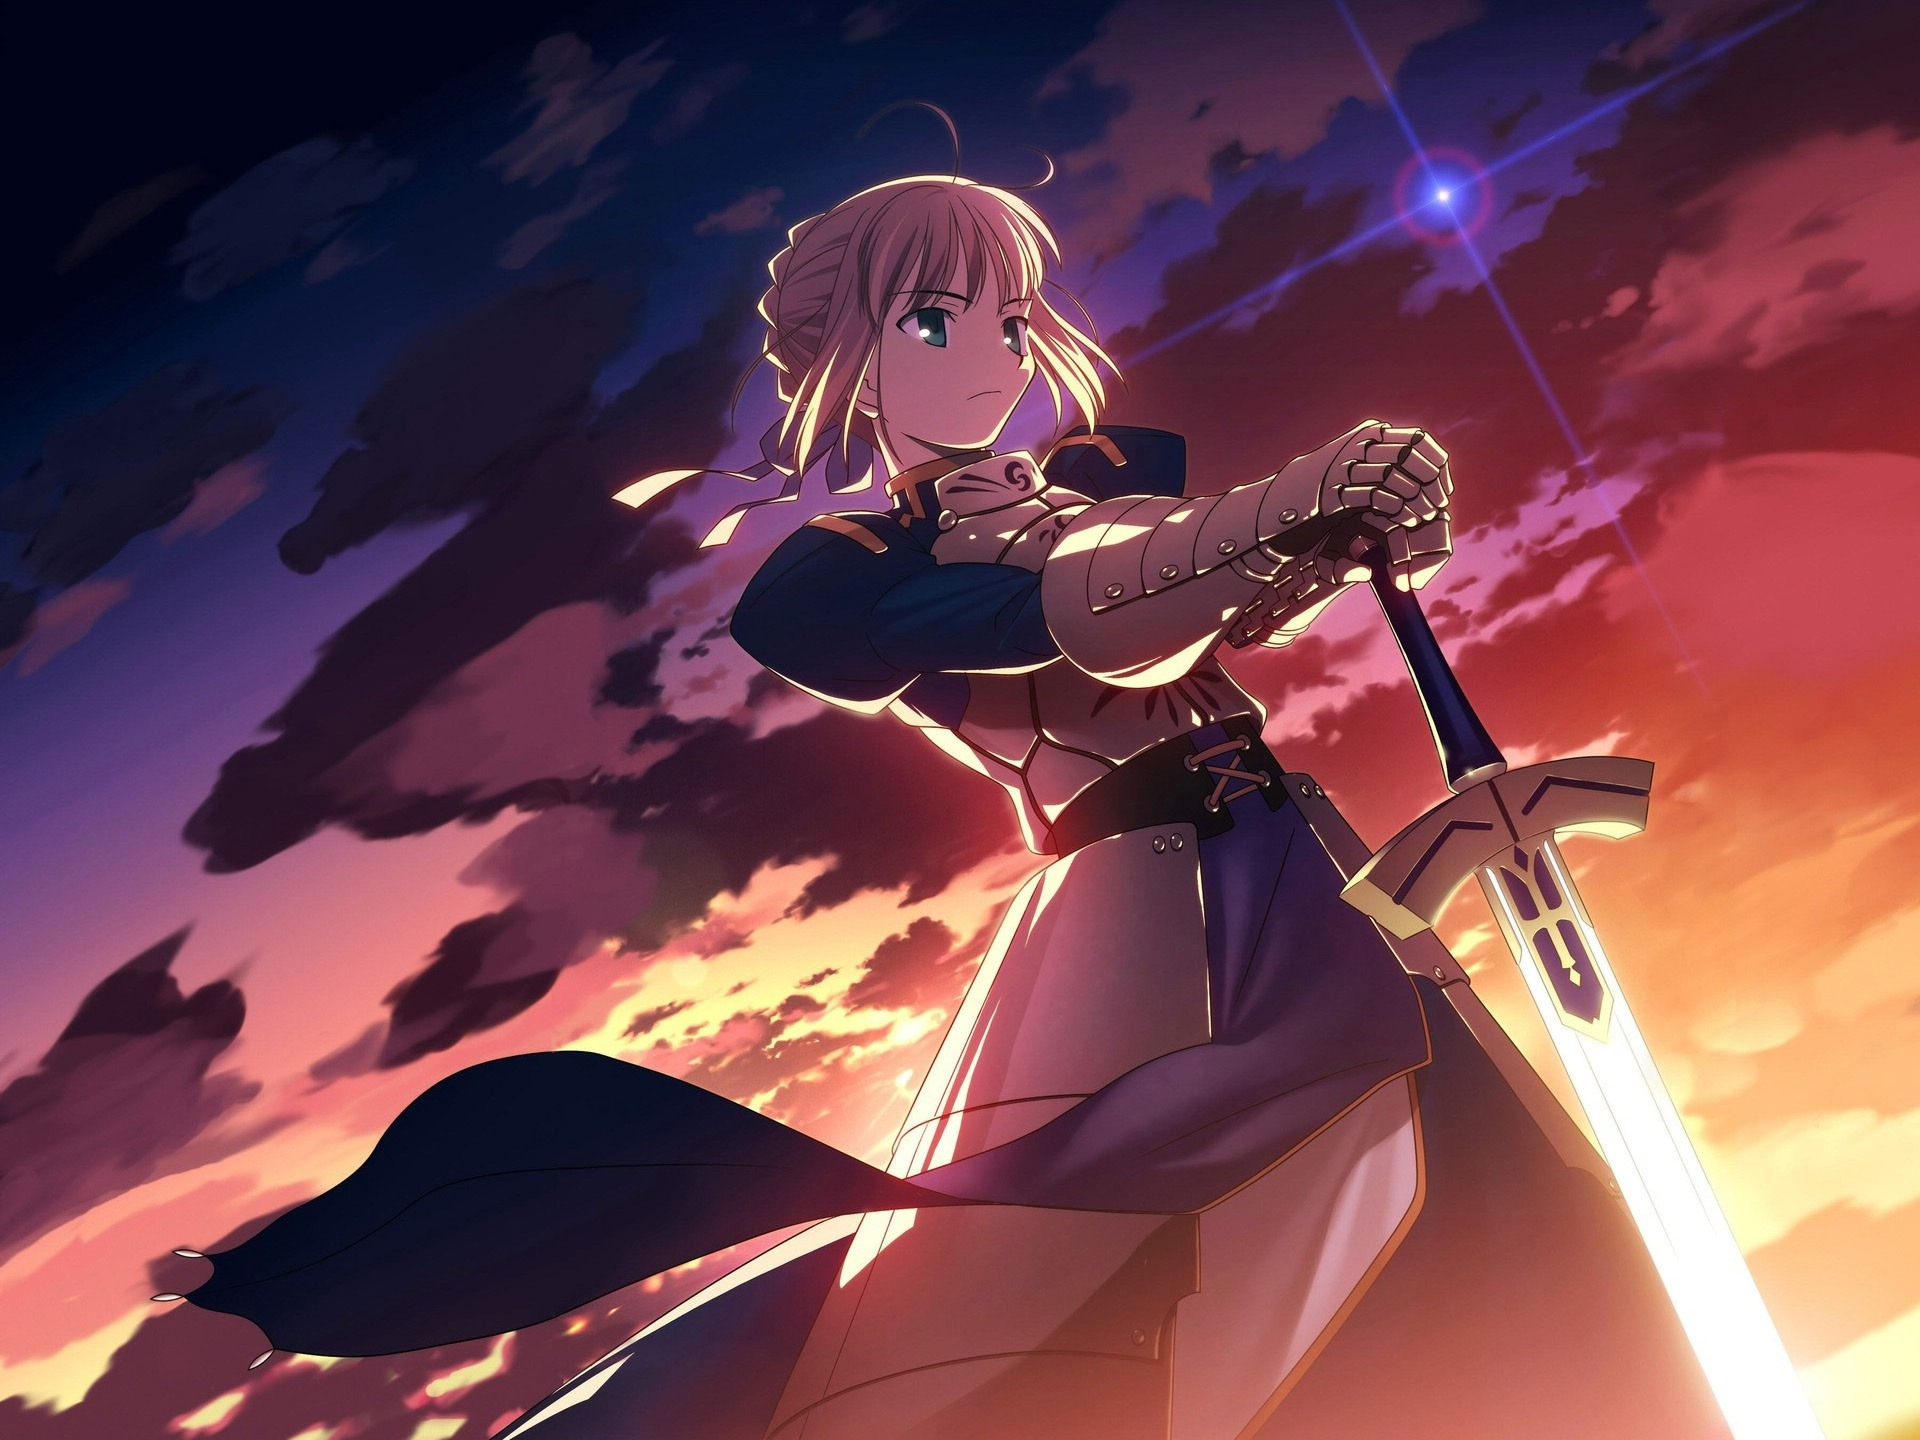 Fate Stay Night Saber Anime Hd Wallpaper Preview 10wallpaper Com